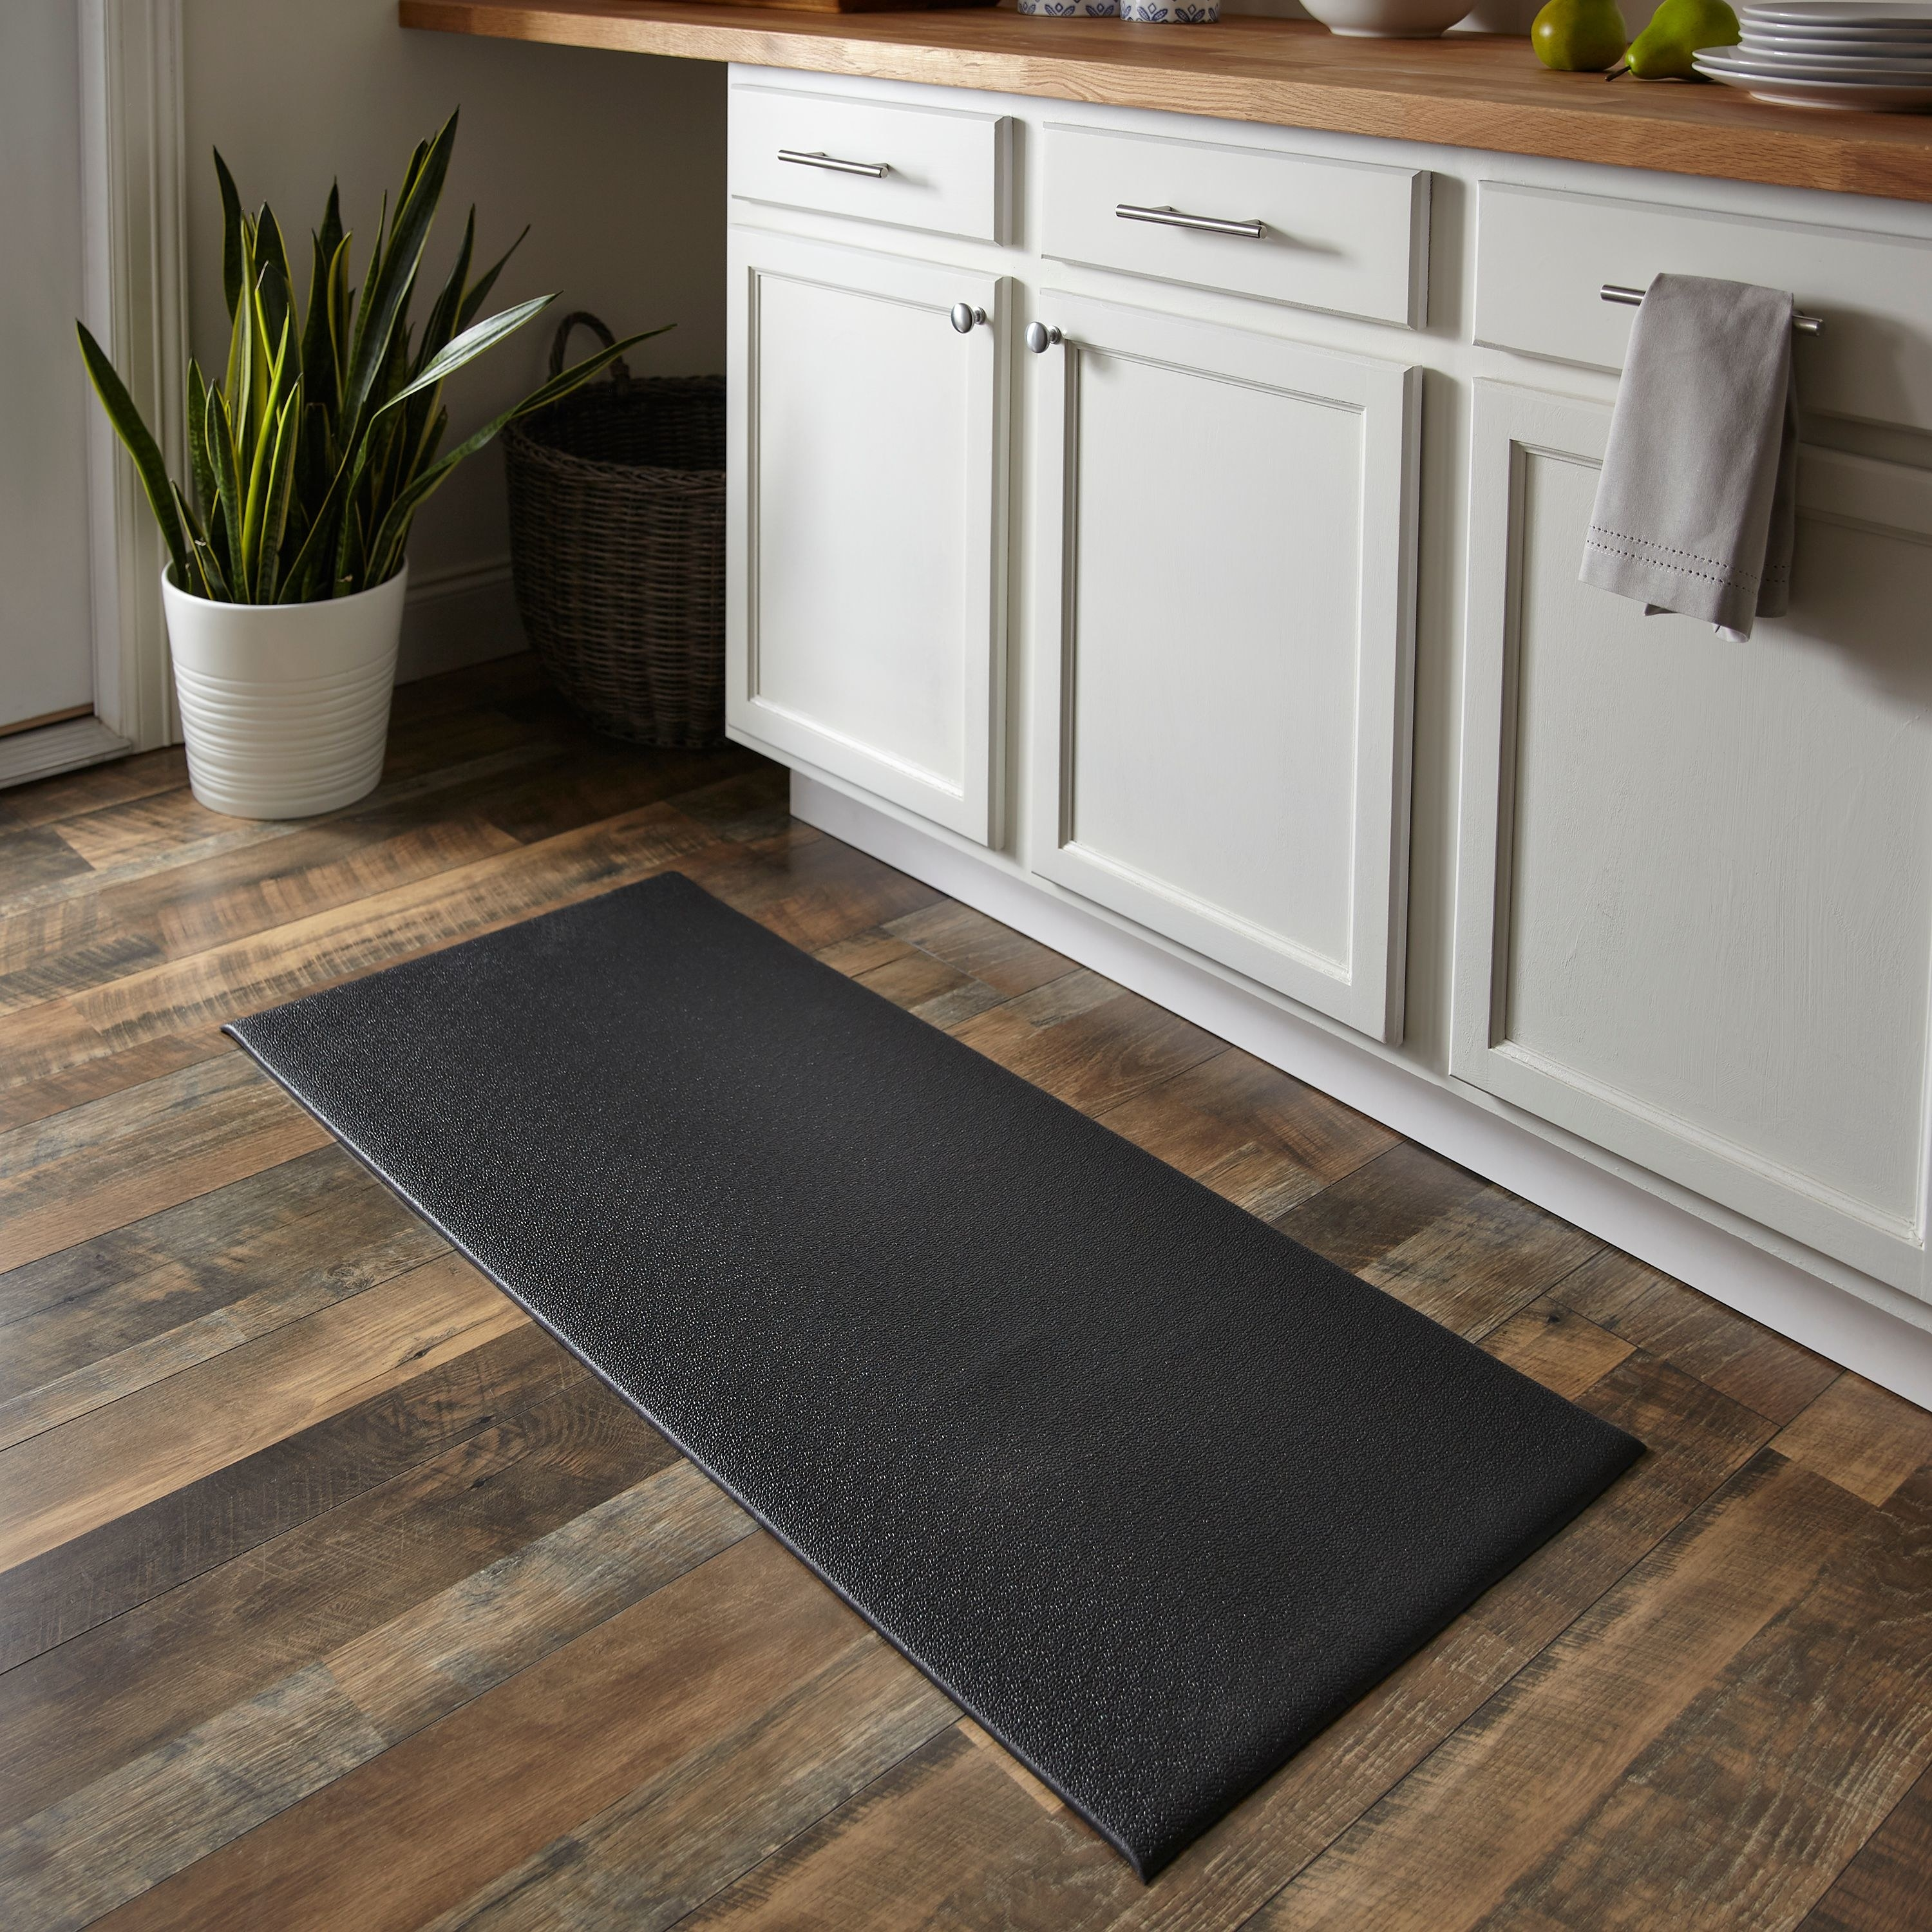 Black kitchen mat on a wooden floor, in front of white cabinets